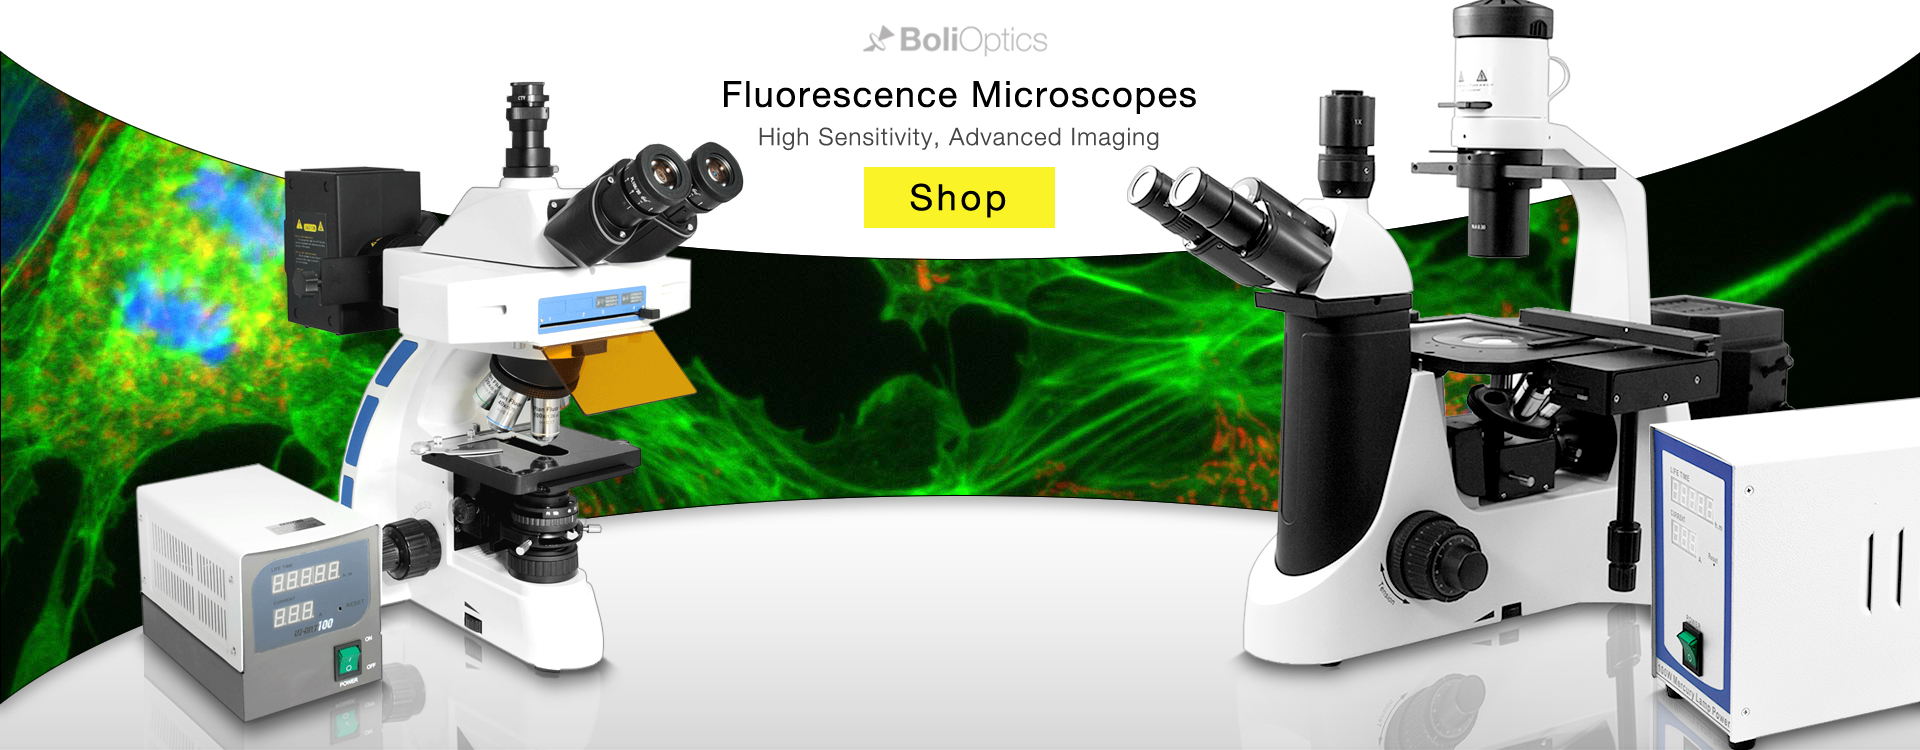 #1 Online Microscope and Accessory Store - Fluorescence Microscopes